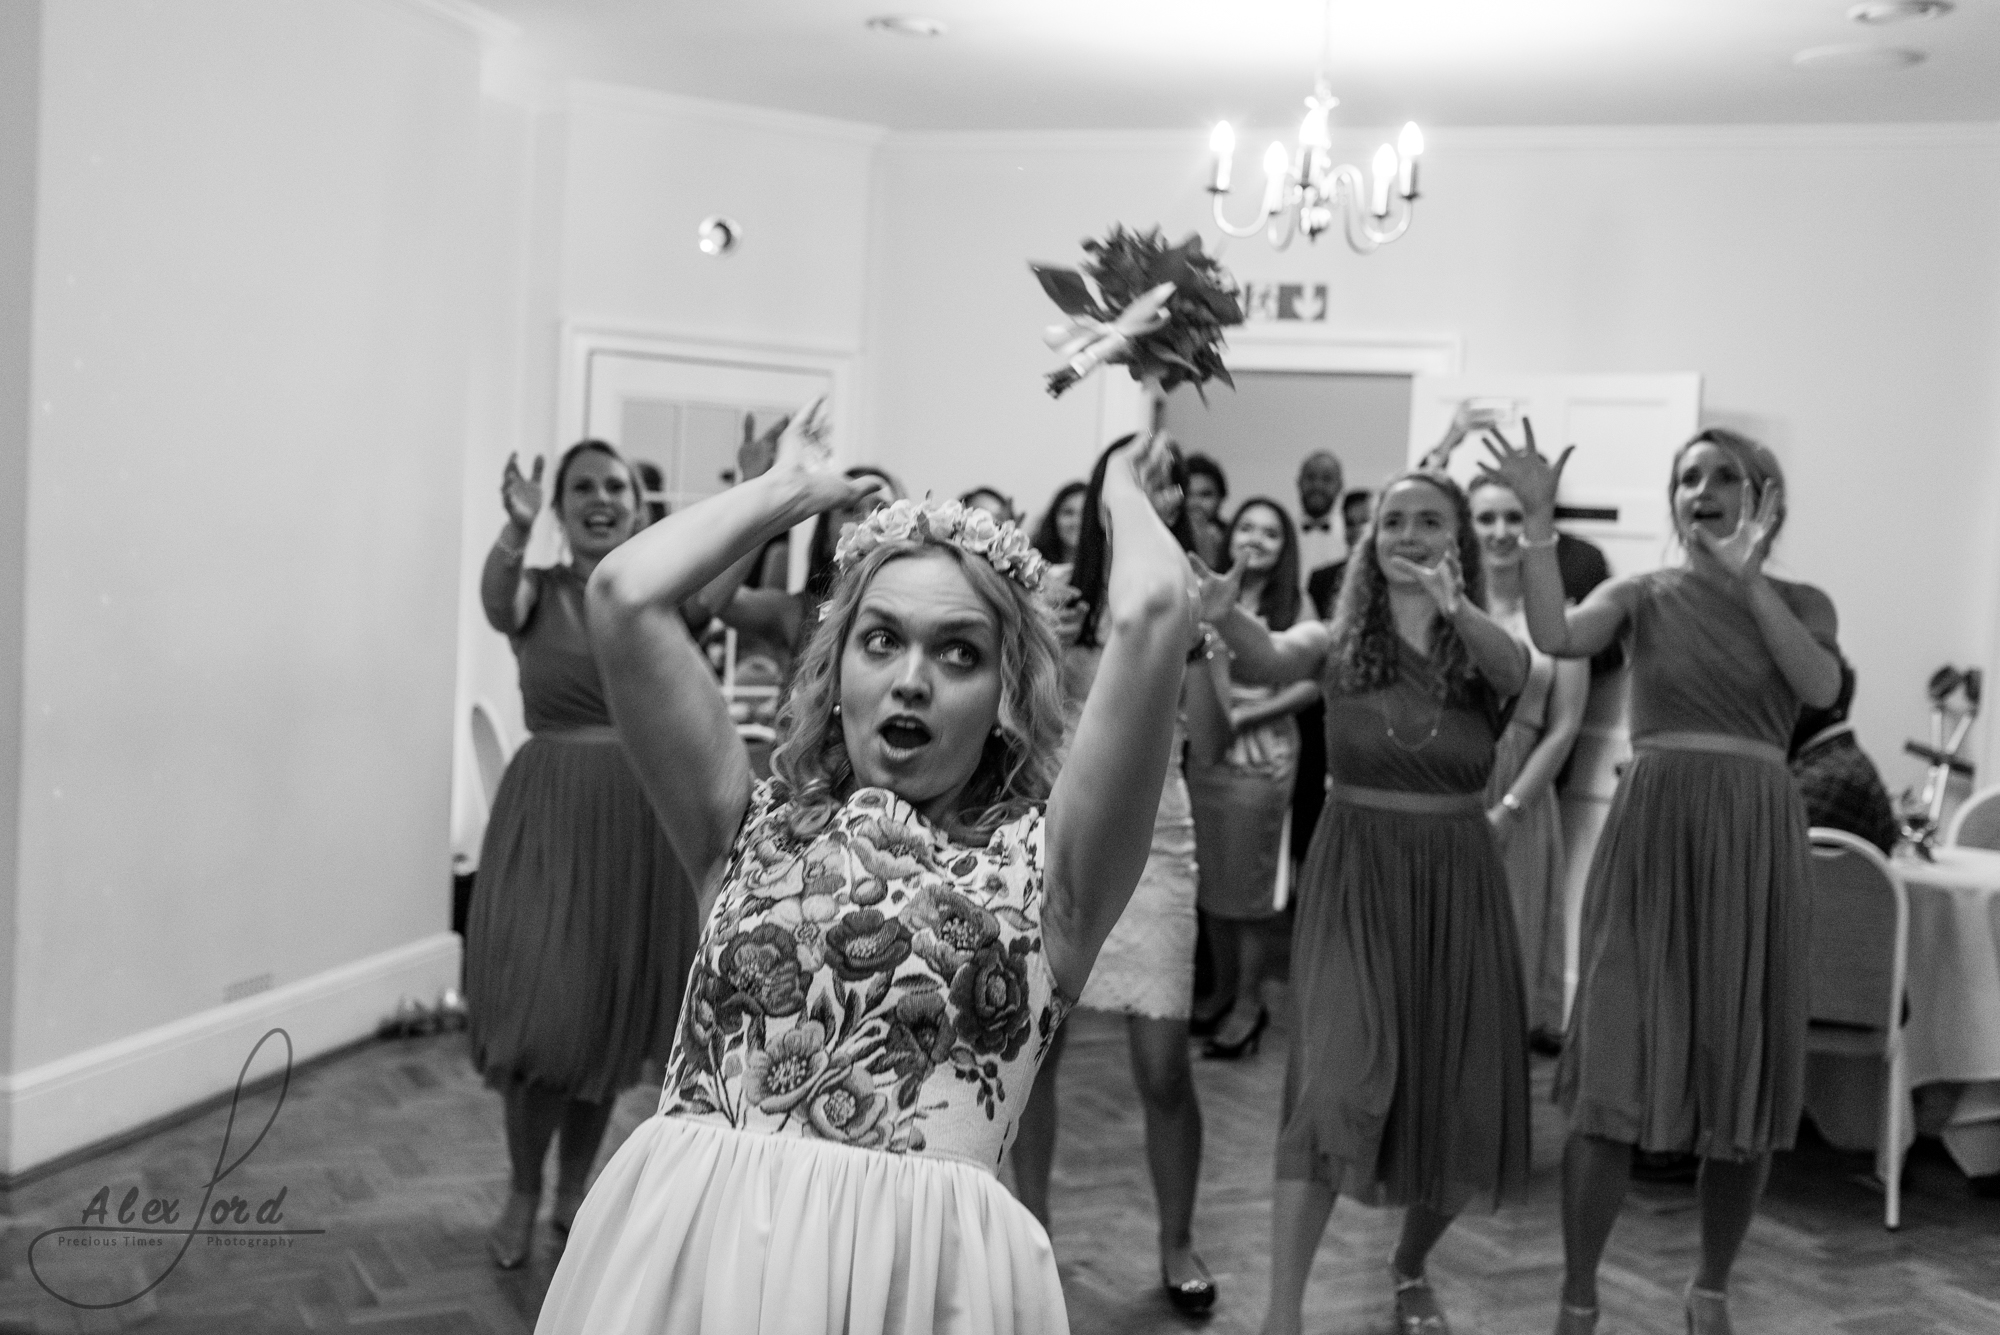 The bride with a shocked expression on her face throws her bouquet inside the wedding venue, to her female friends waiting to catch it